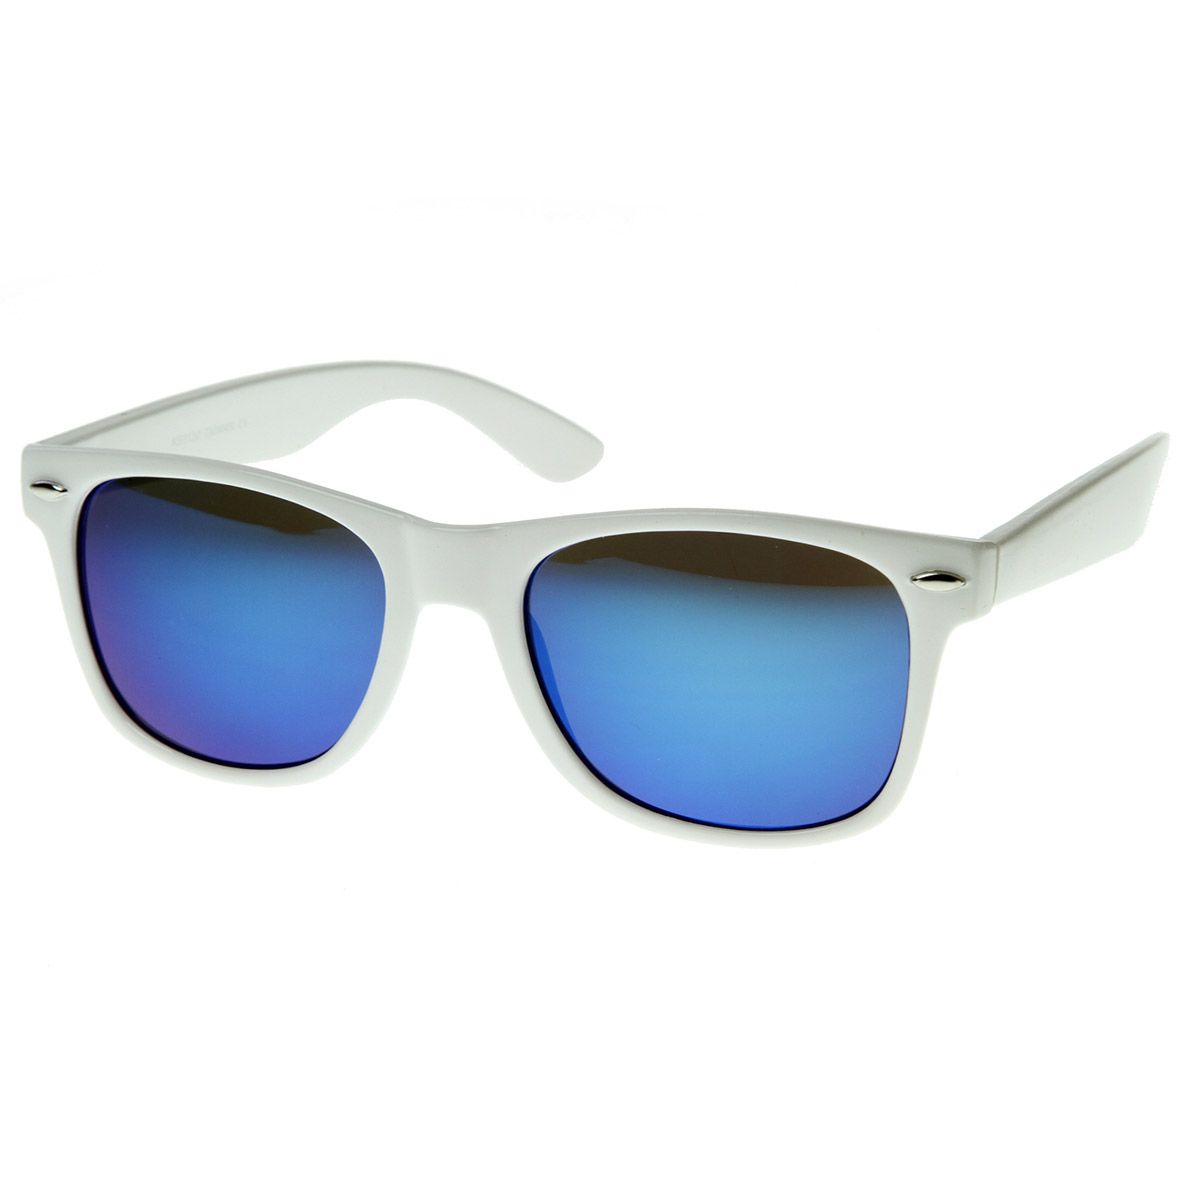 Hipster Fashion Revo Color Mirror Lens Horn Rimmed Style Sunglasses White